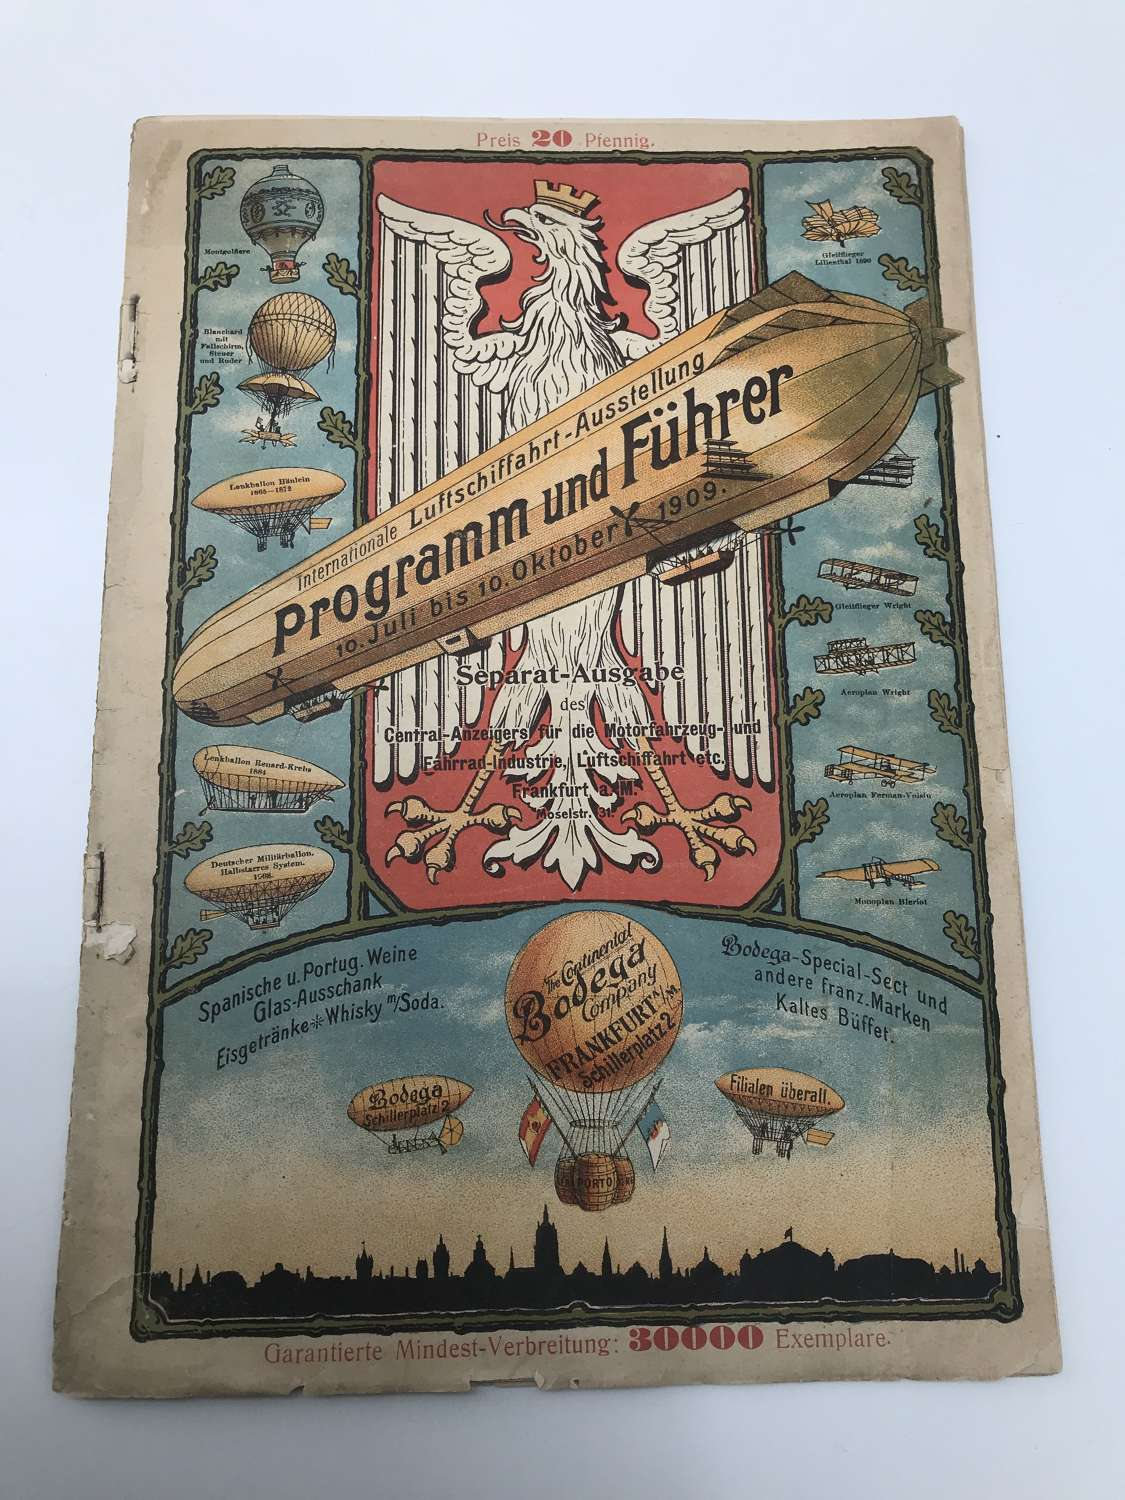 Rare German aviation magazine dated 1909